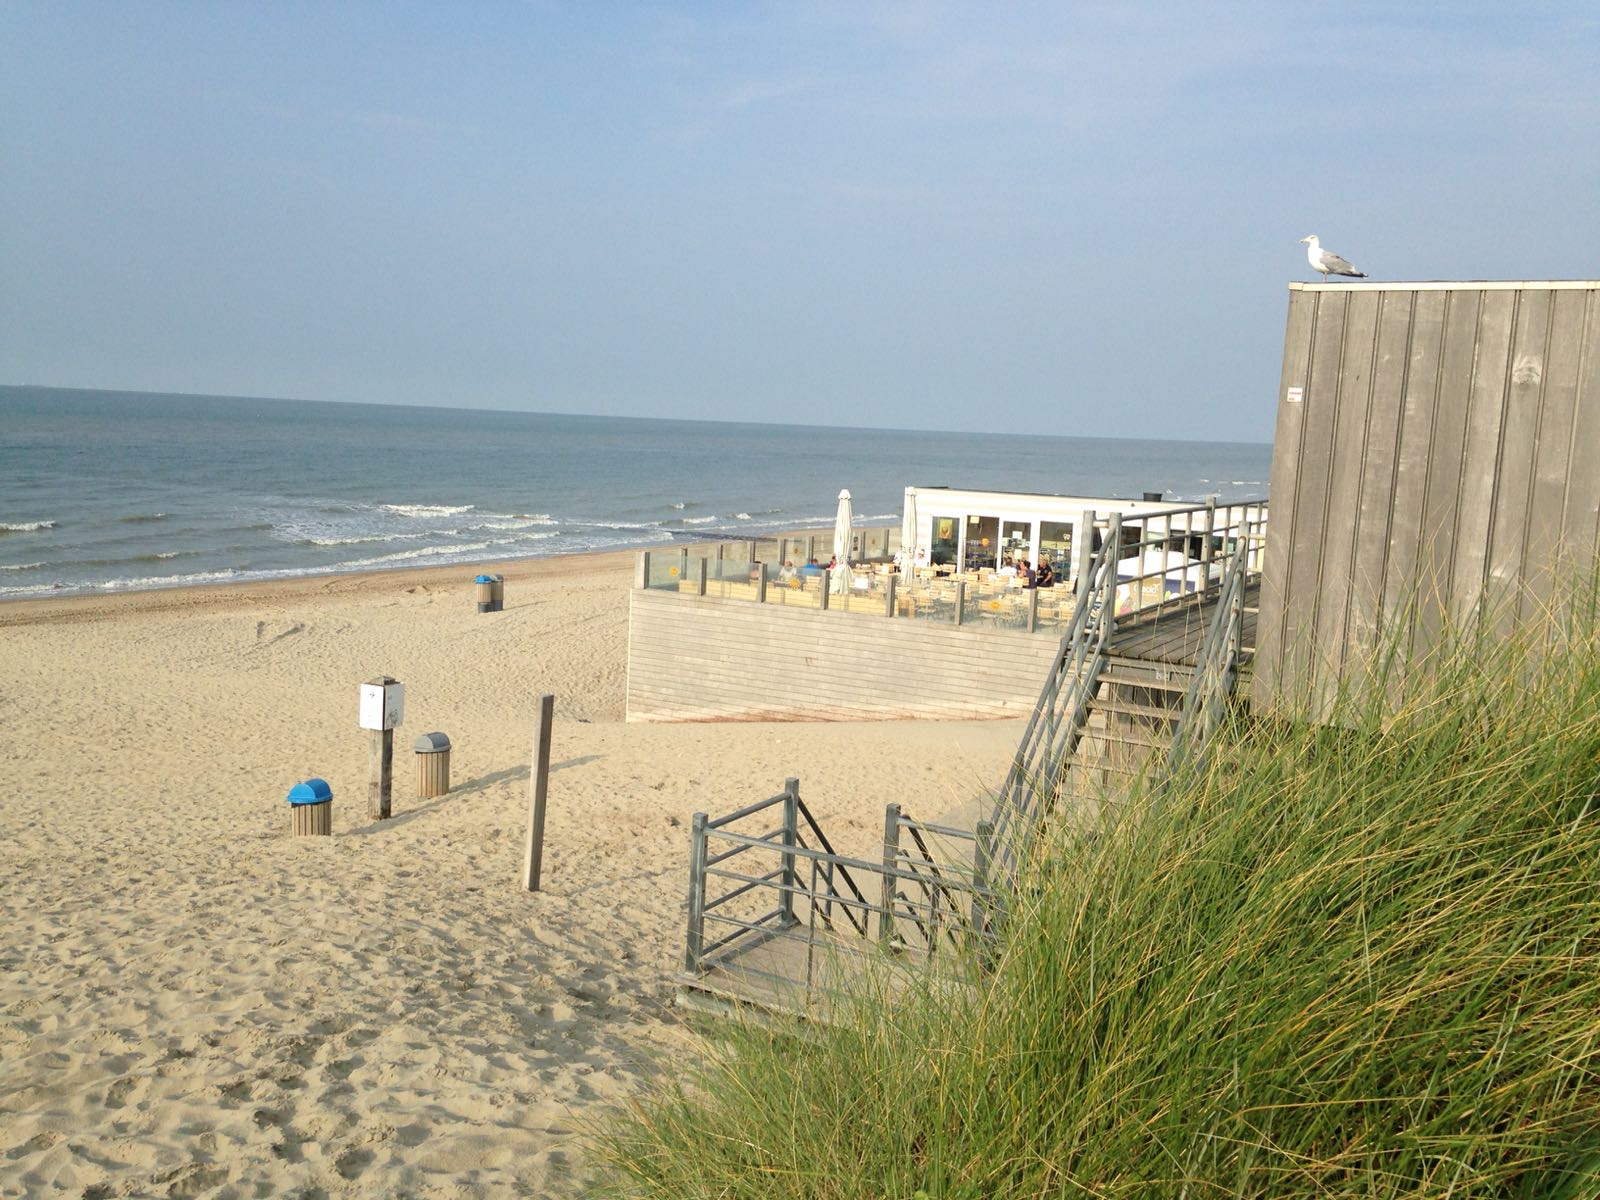 http://www.nordsee-chalet.com/wp-content/uploads/2017/03/IMG-20170218-WA0014.jpg